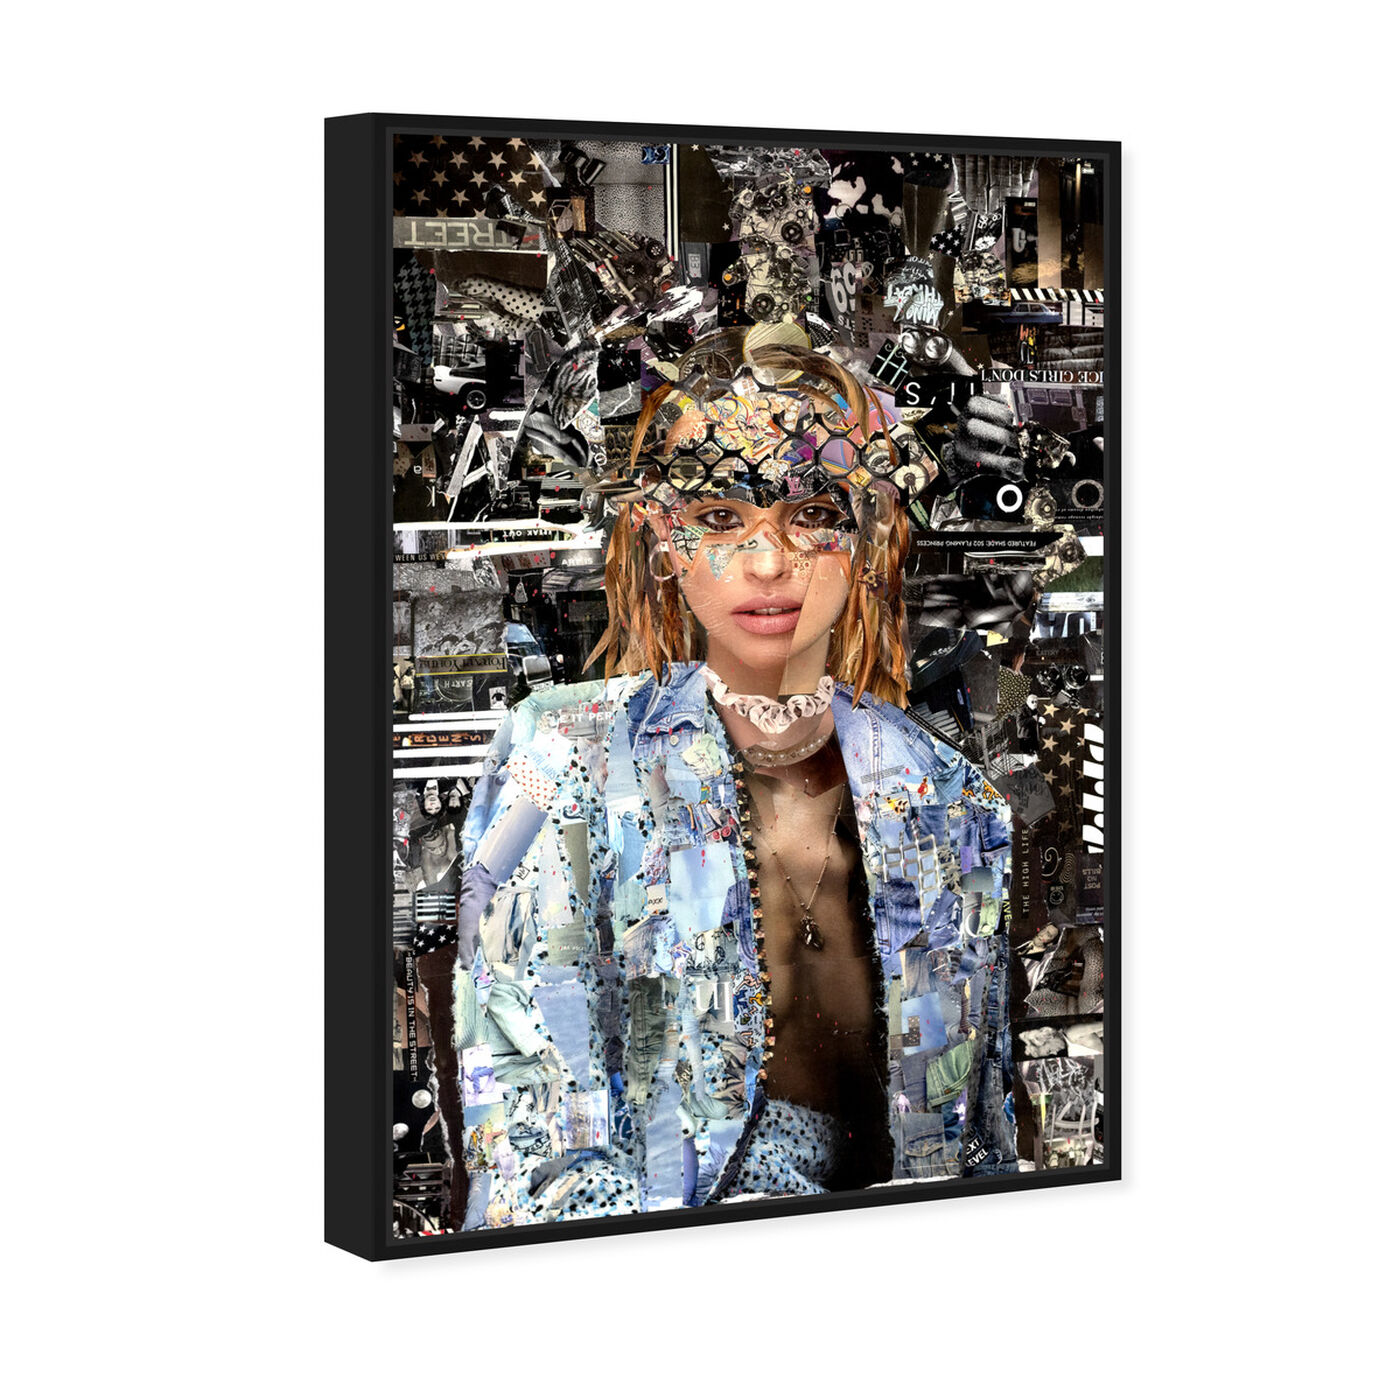 Angled view of Katy Hirschfeld - Queen of her Realm featuring fashion and glam and portraits art.